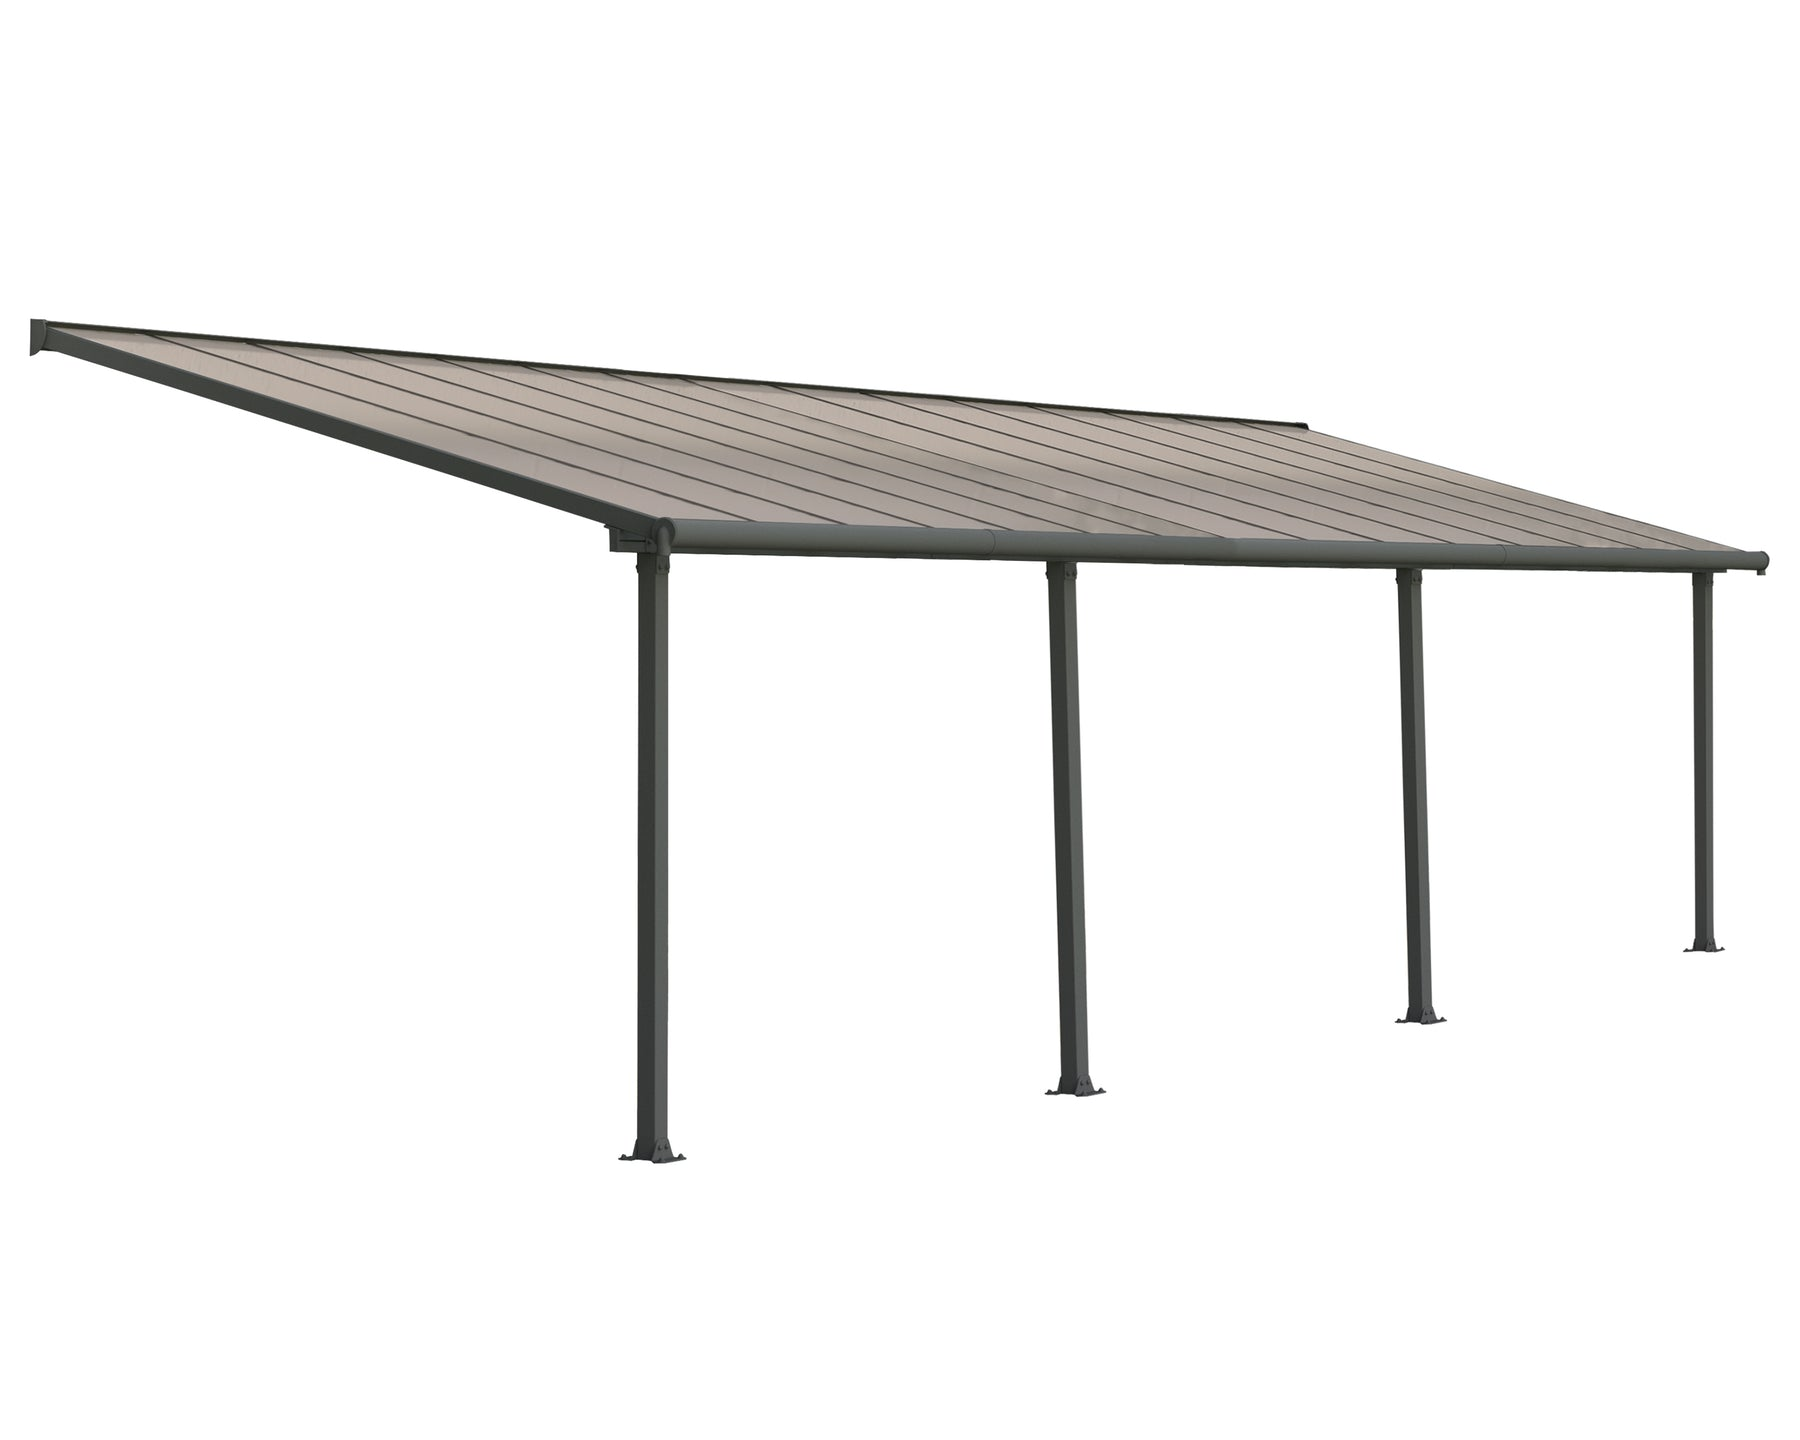 Palram Olympia Patio Covers, Gray/Bronze Size - 10' x 30':Tuff Nest